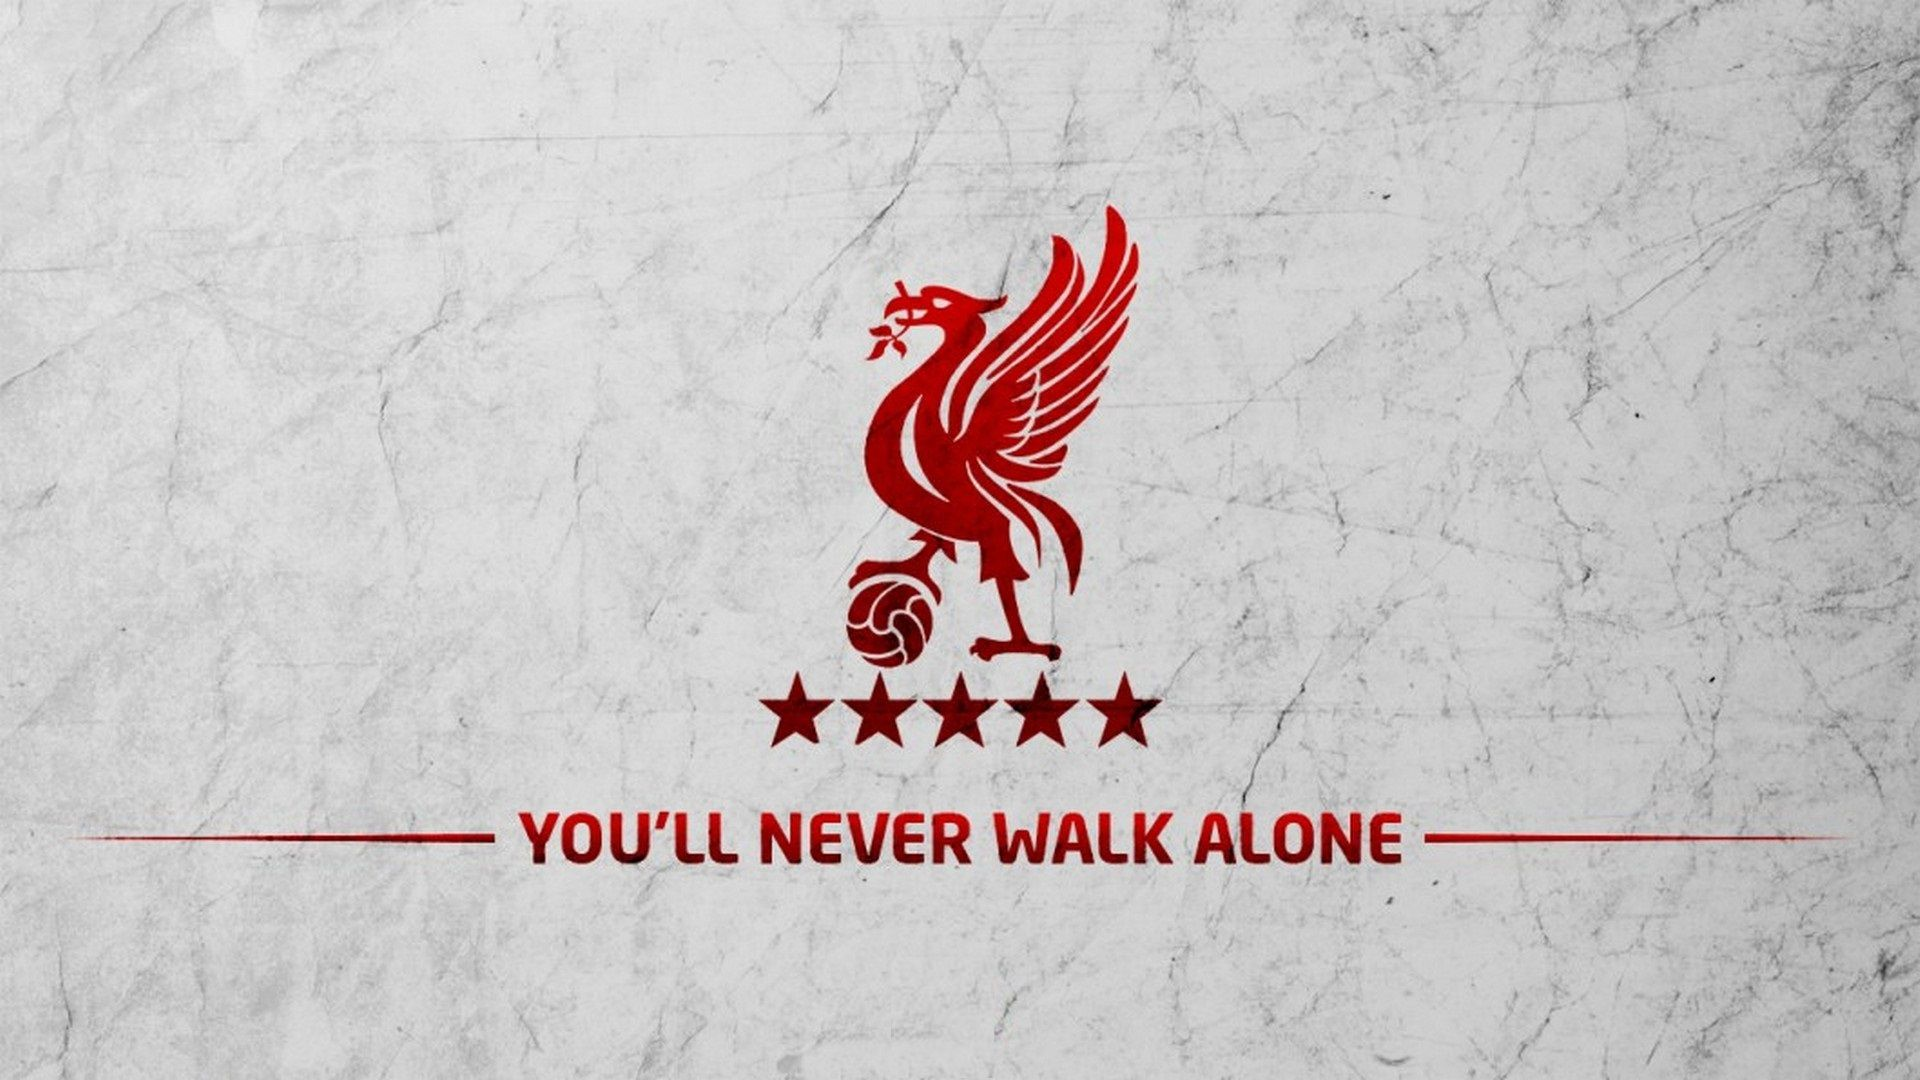 Liverpool Wallpaper For Mac Backgrounds